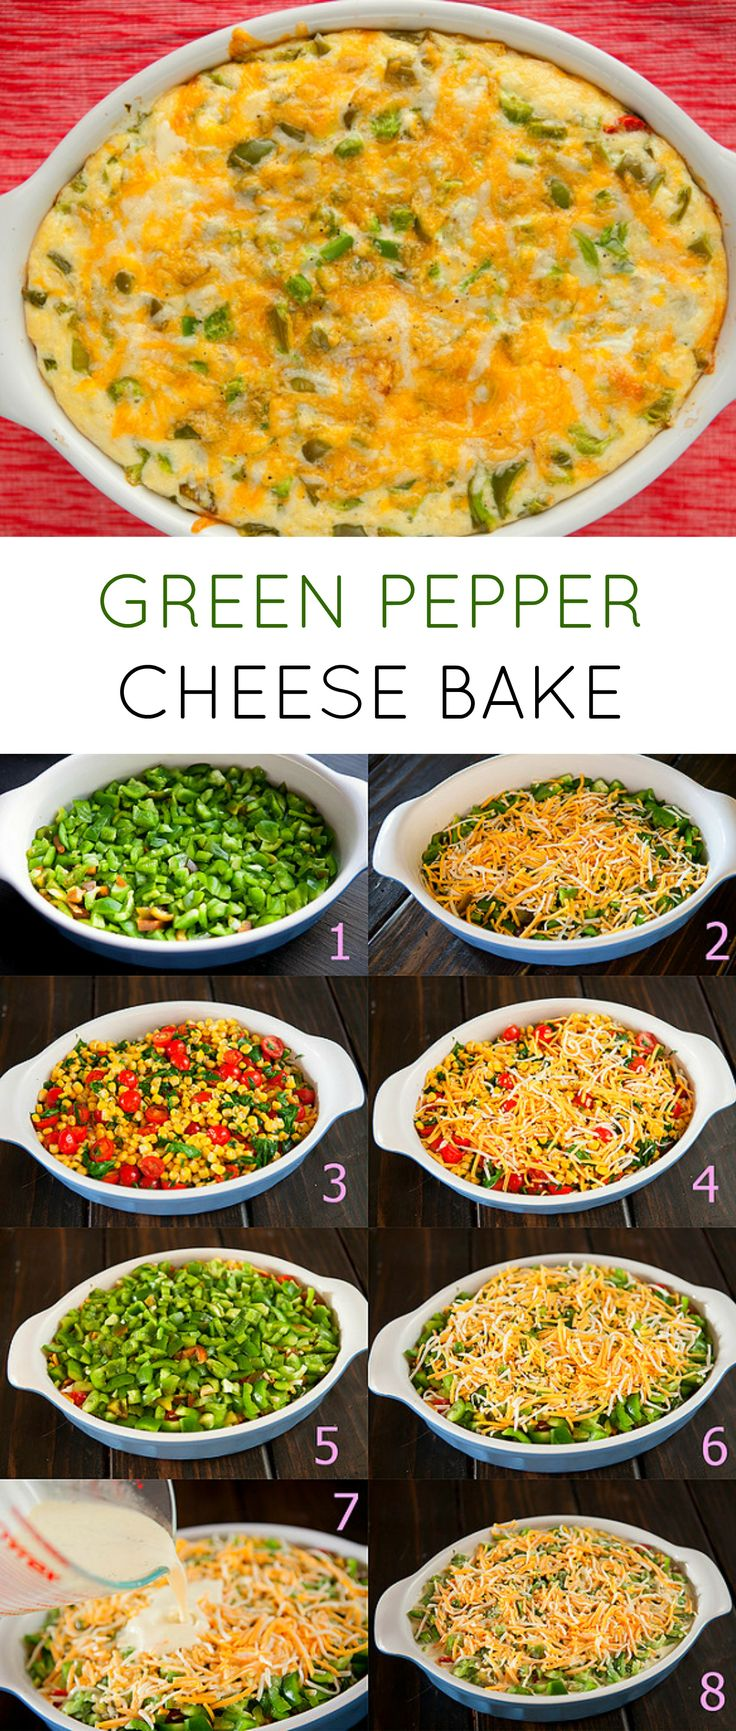 This Green Pepper Cheese Bake is a delicious comfort food recipe! It's also filled with vegetables: 2 pounds of green peppers, 1 cup of tomatoes, 2 cups of corn and 1 cup of spinach. Your family will love it!